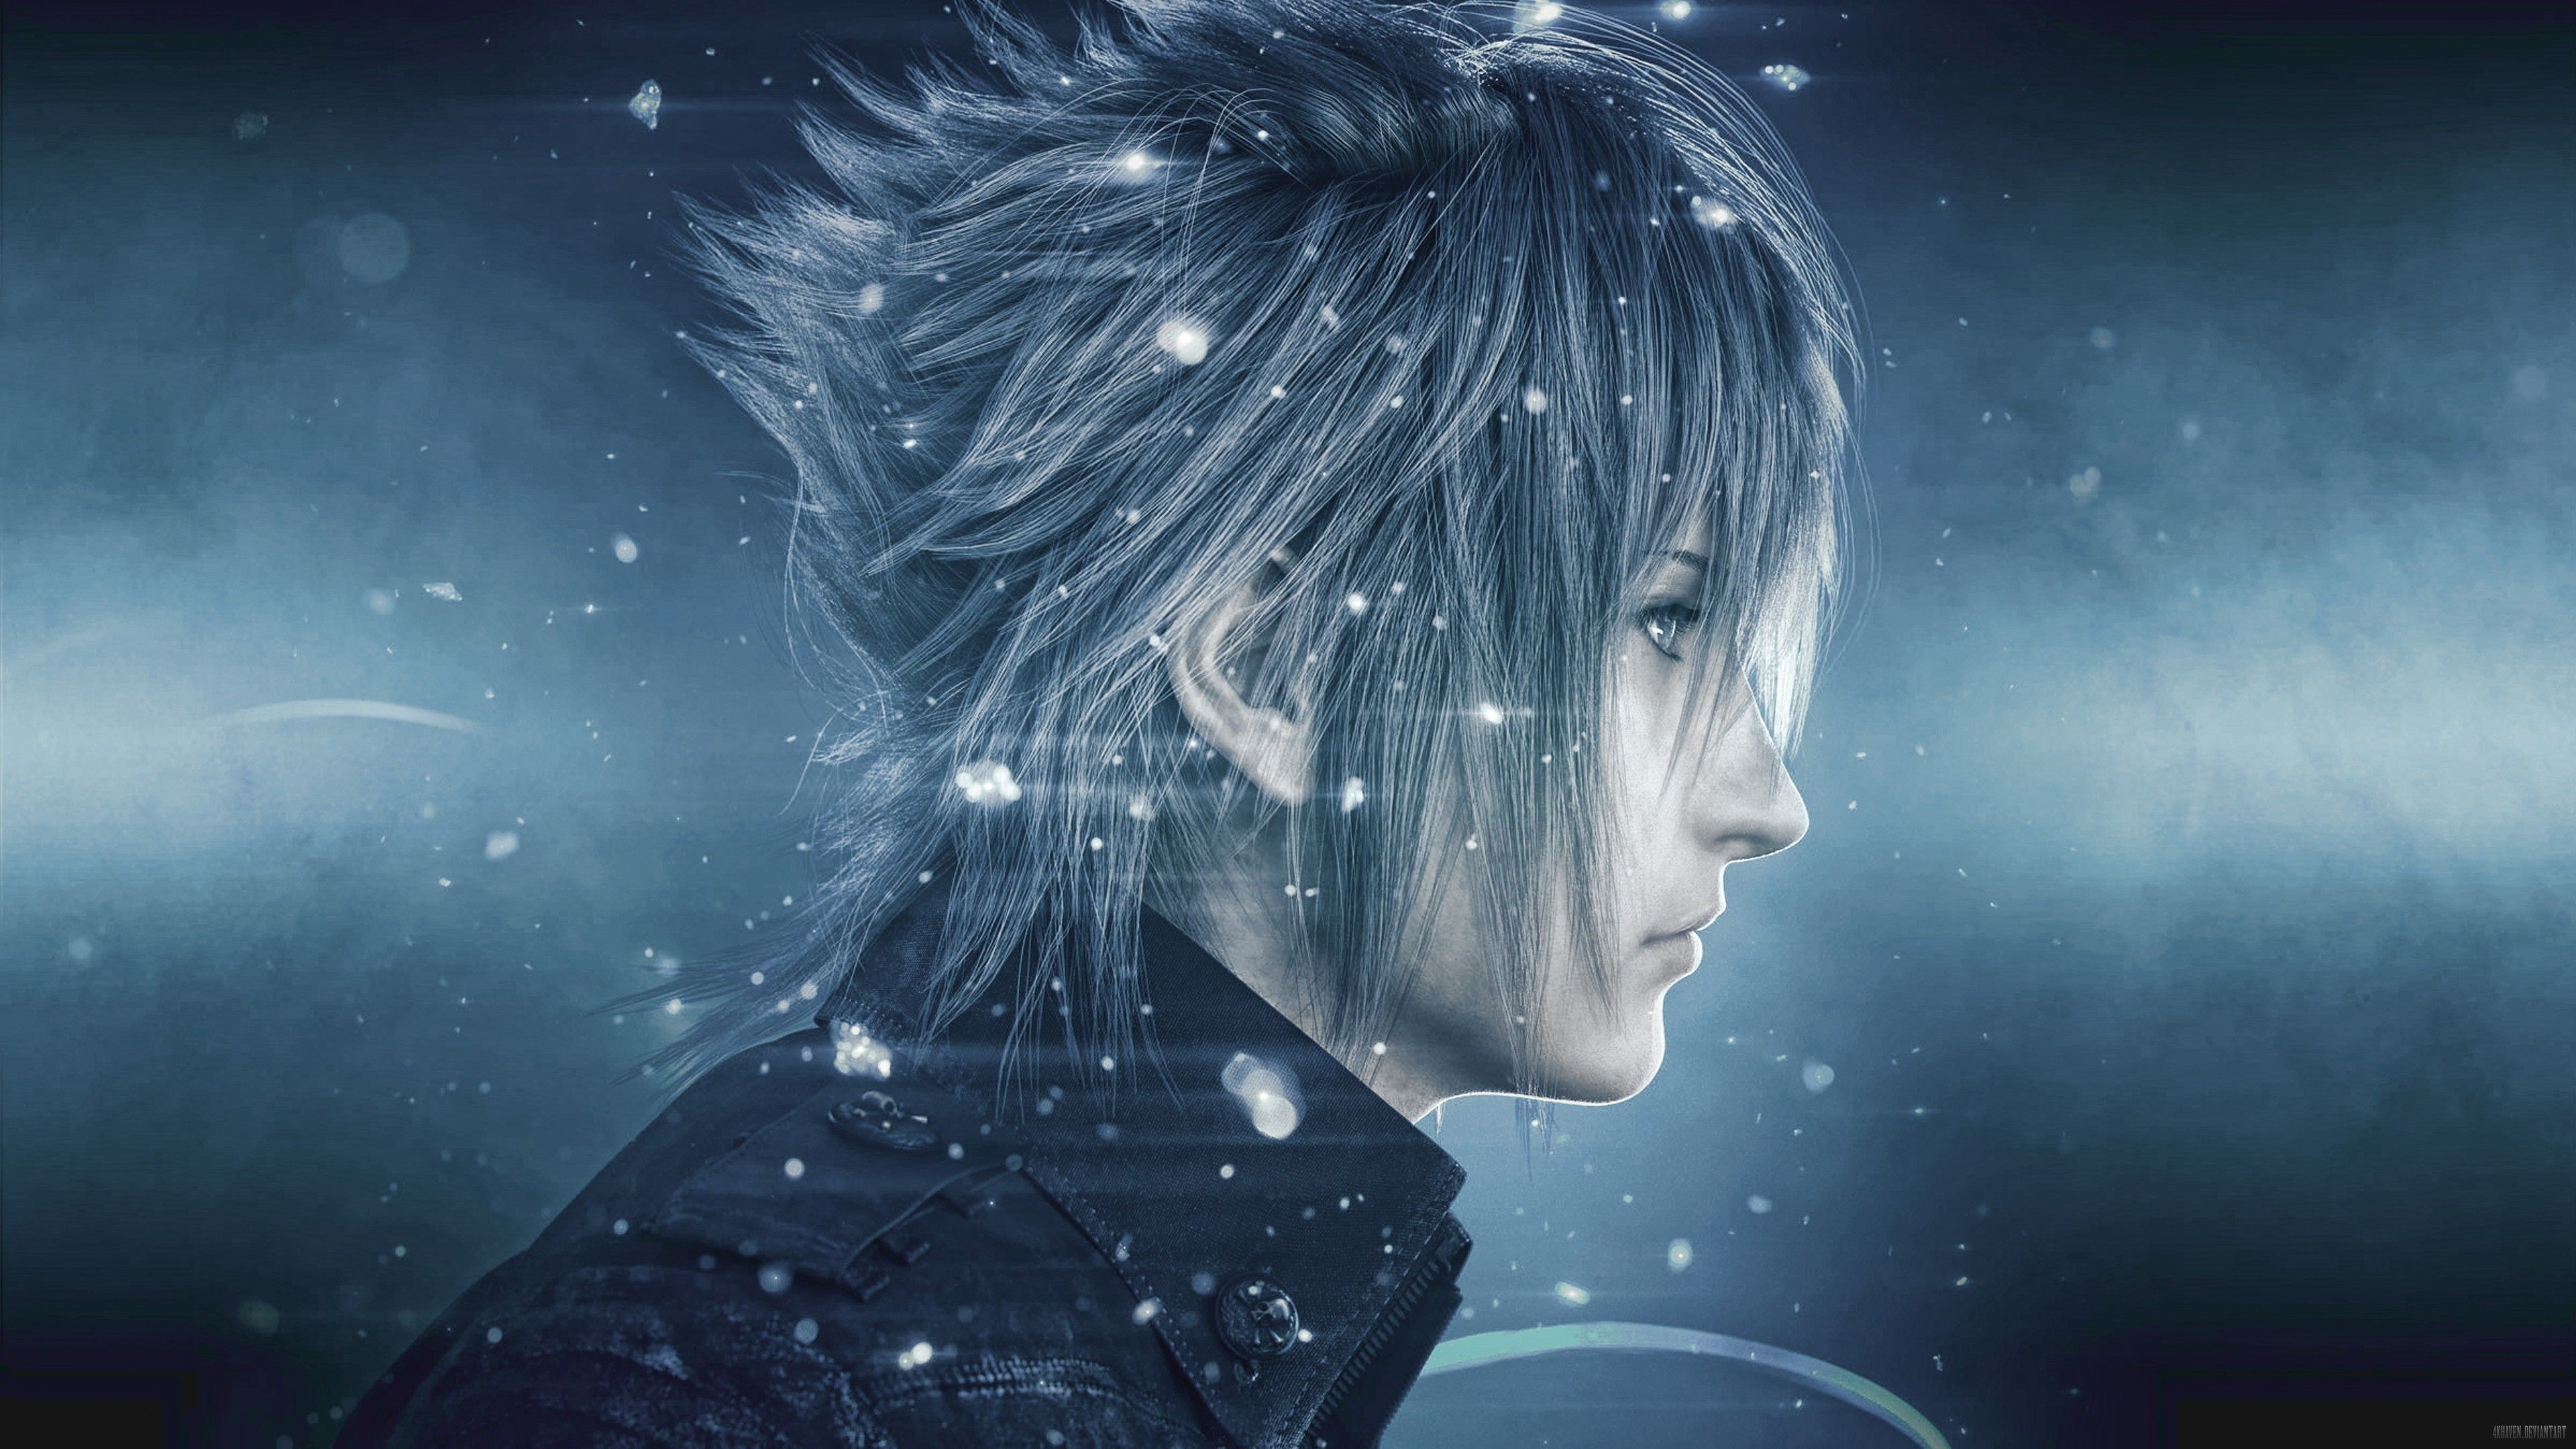 Final Fantasy 15 Wallpaper High Definition Sdeerwallpaper